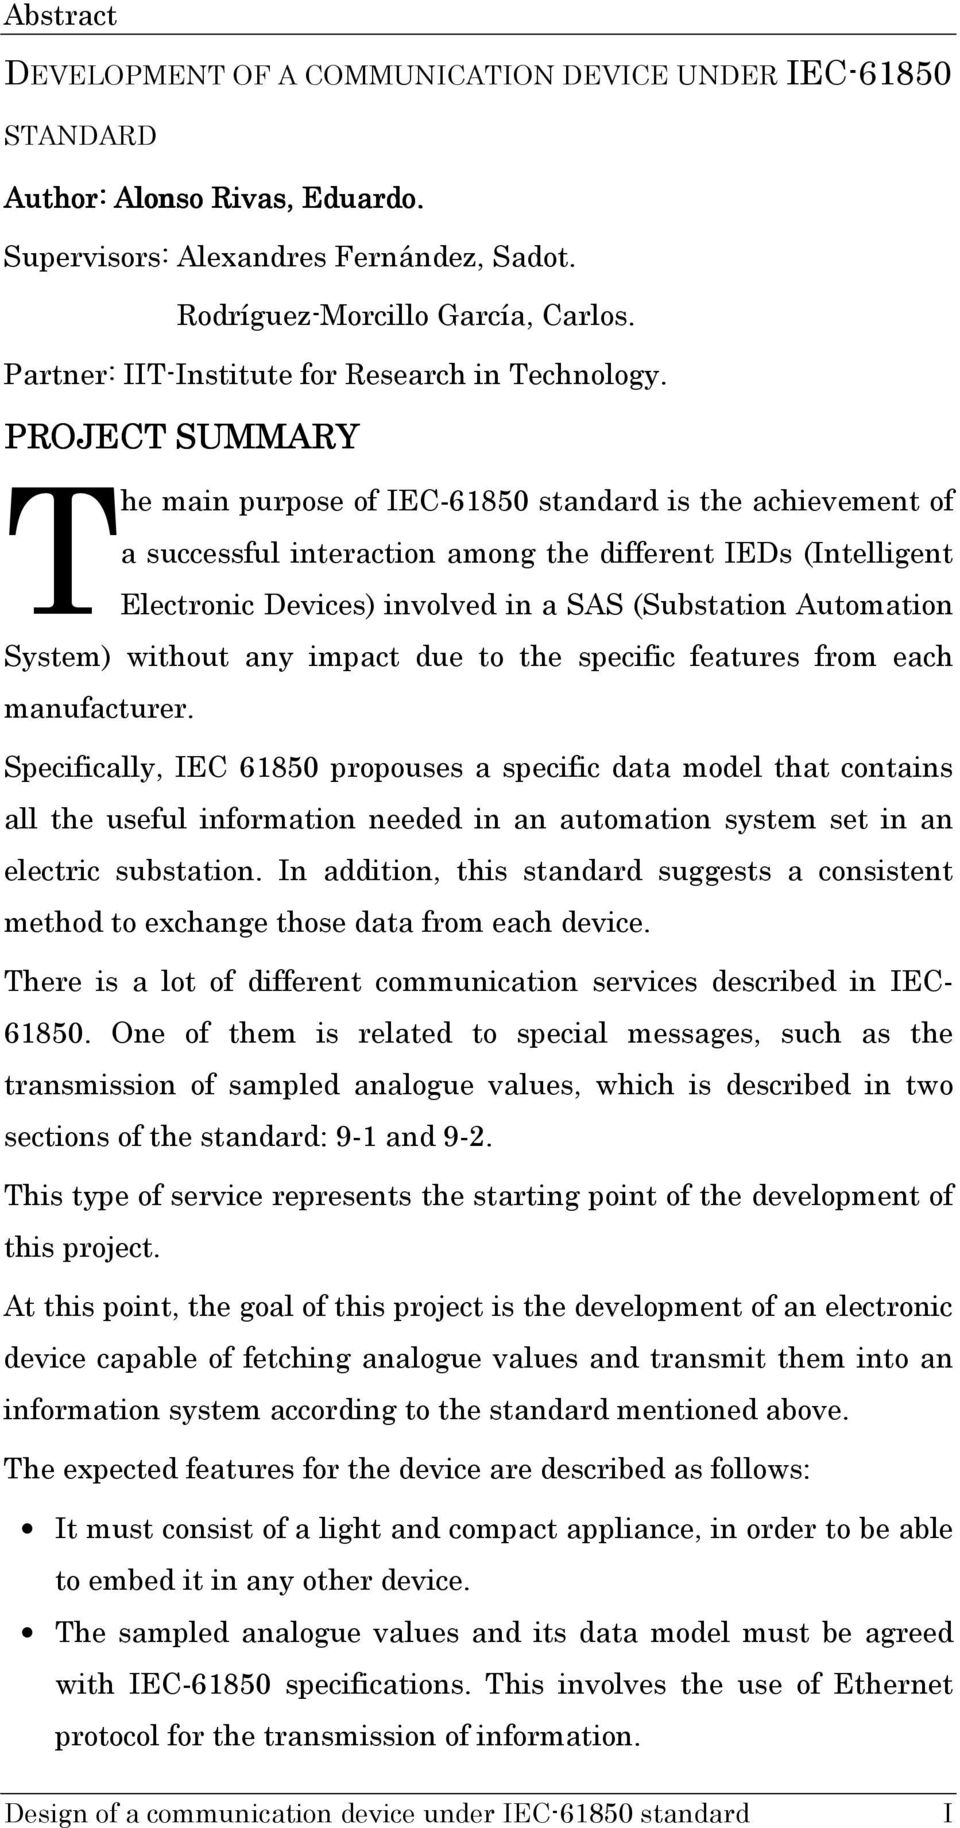 PROJECT SUMMARY T he main purpose of IEC-61850 standard is the achievement of a successful interaction among the different IEDs (Intelligent Electronic Devices) involved in a SAS (Substation